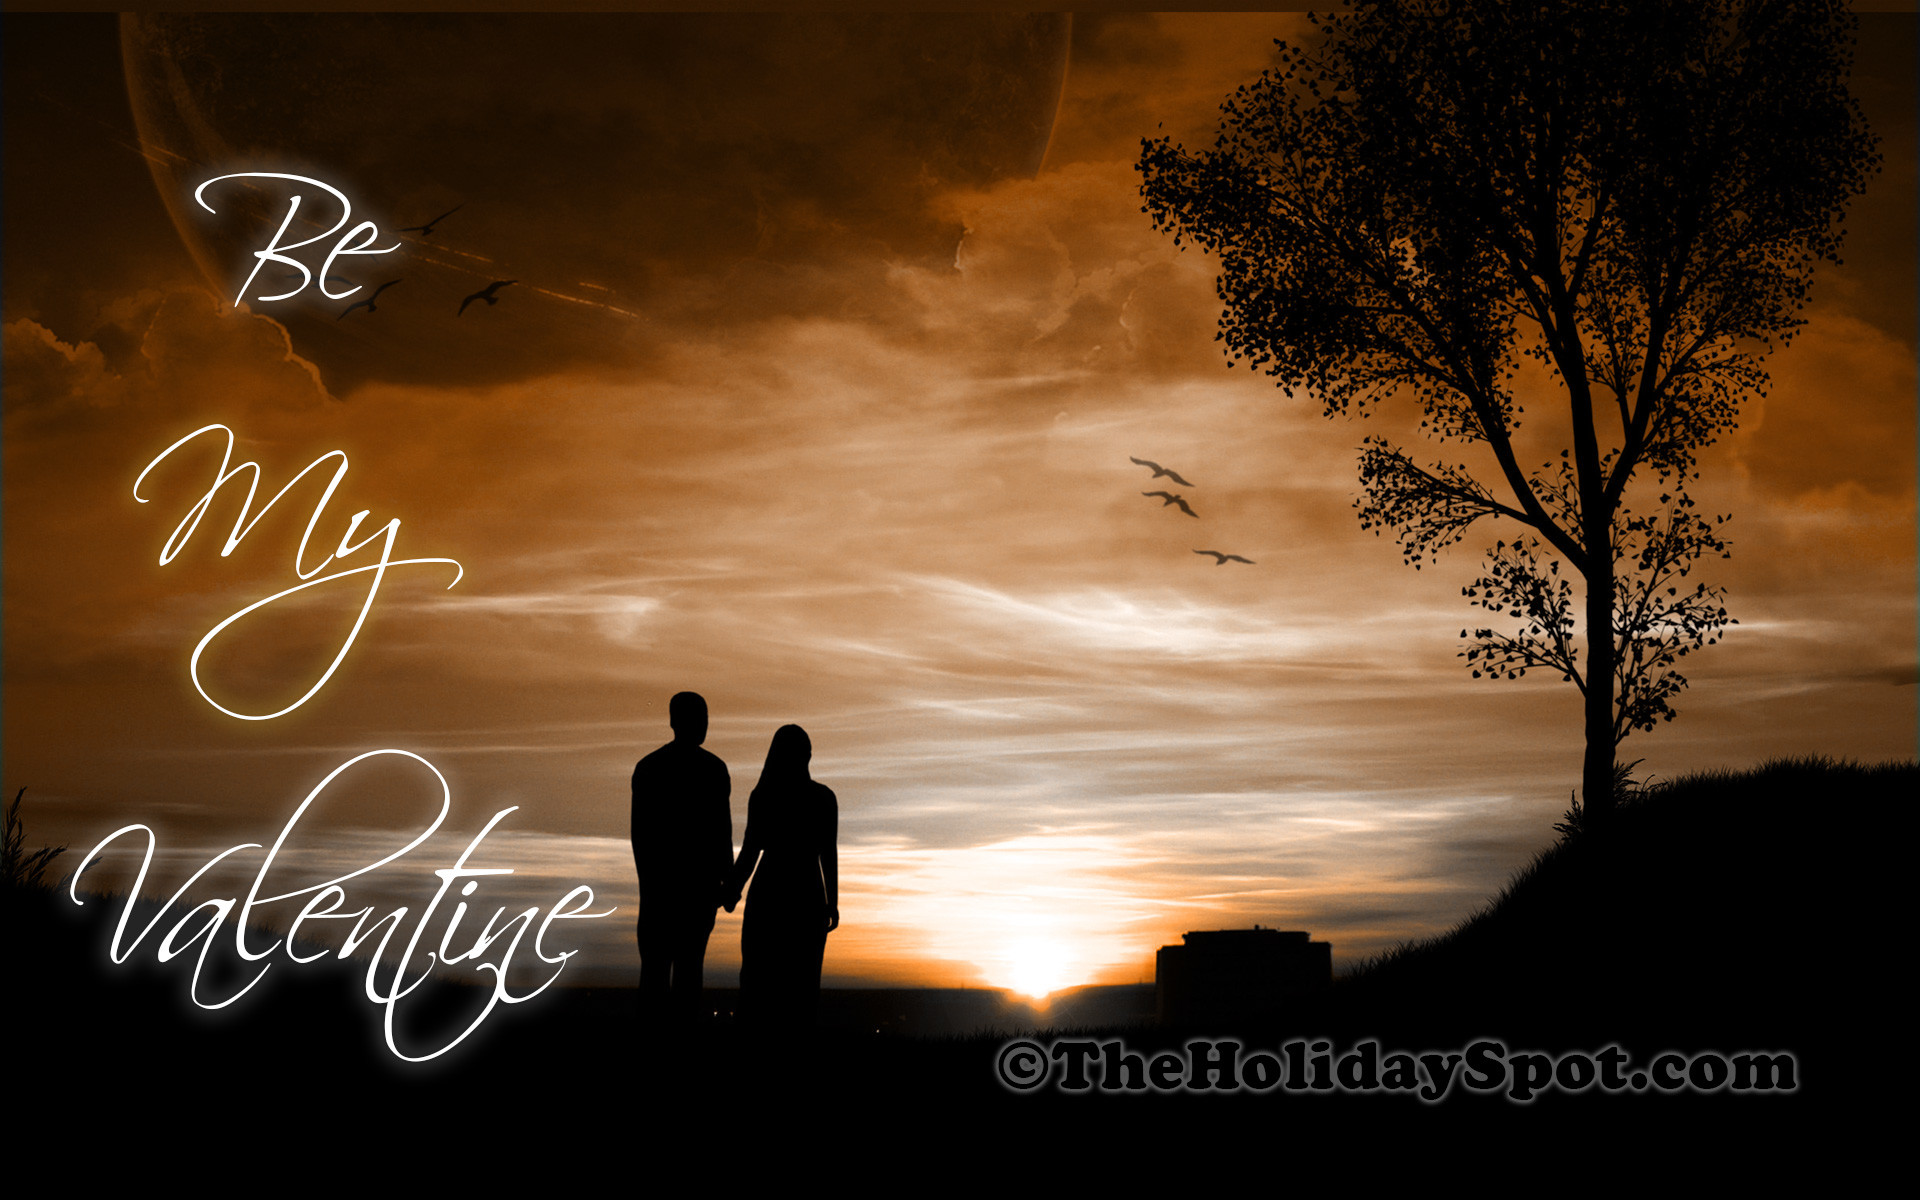 High Definition Valentines Day Wallpaper of a couple walking together